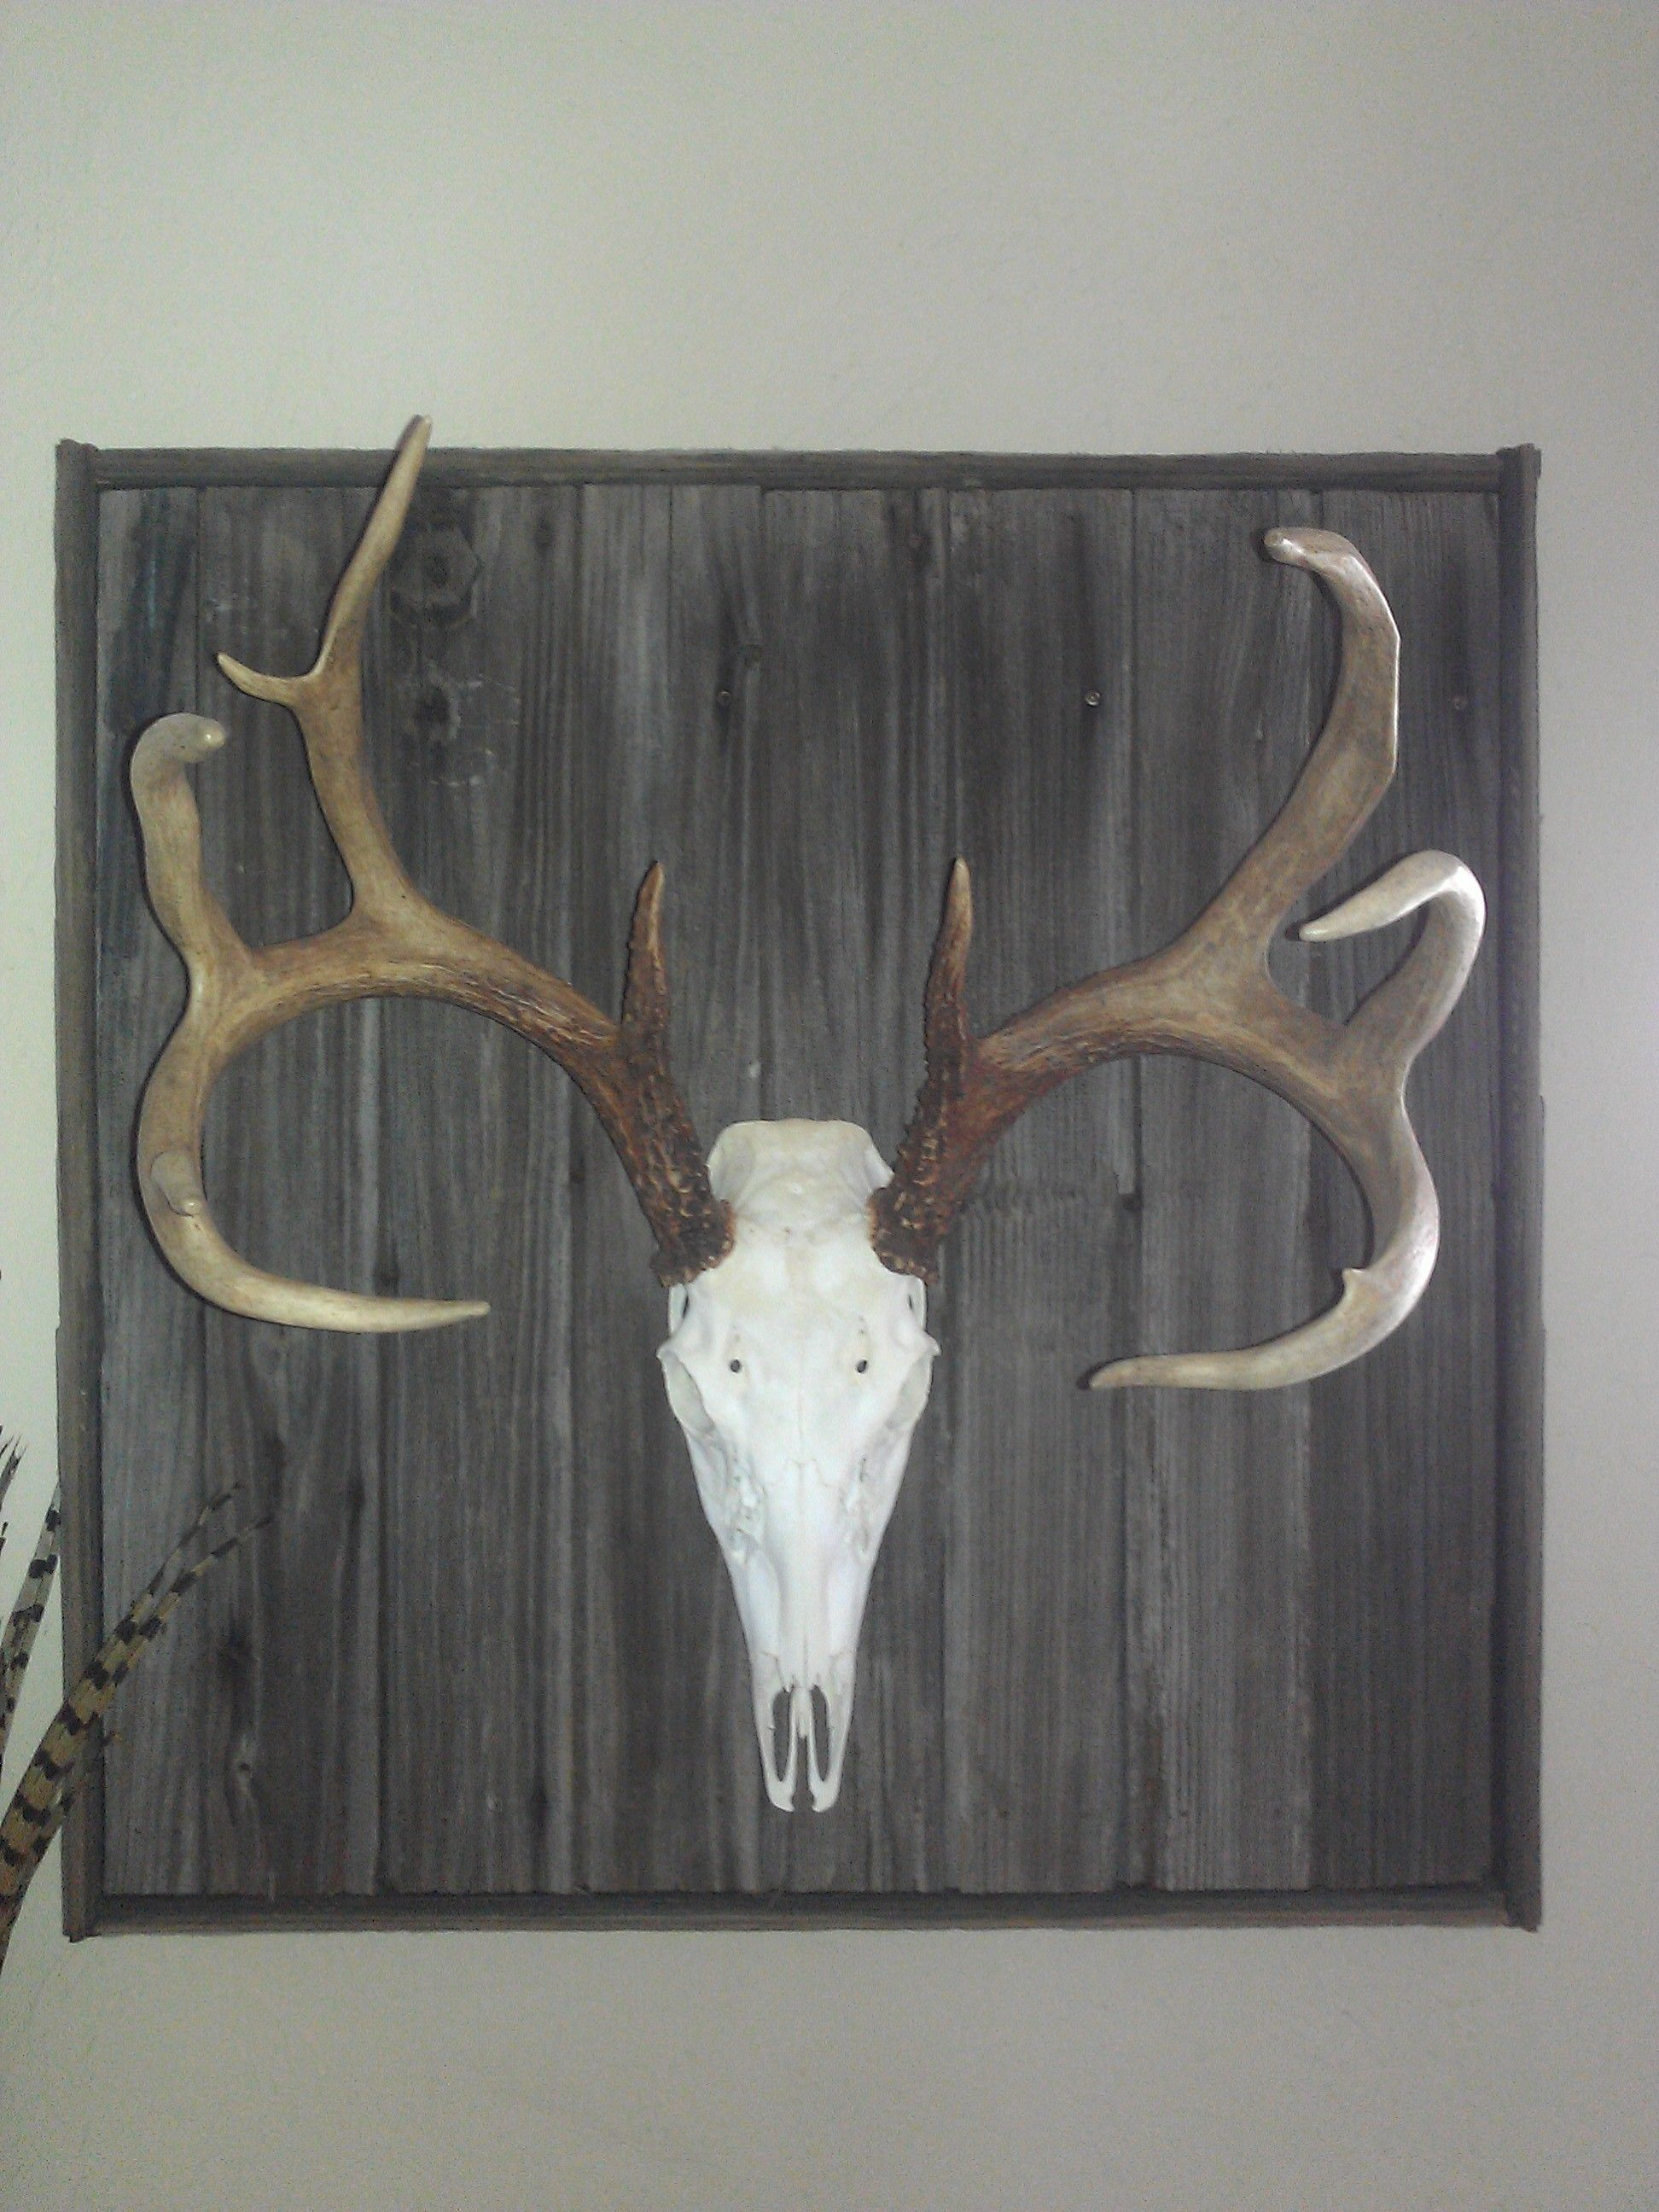 Deer skull mount ideas - Deer Mount On An Old Barn Door